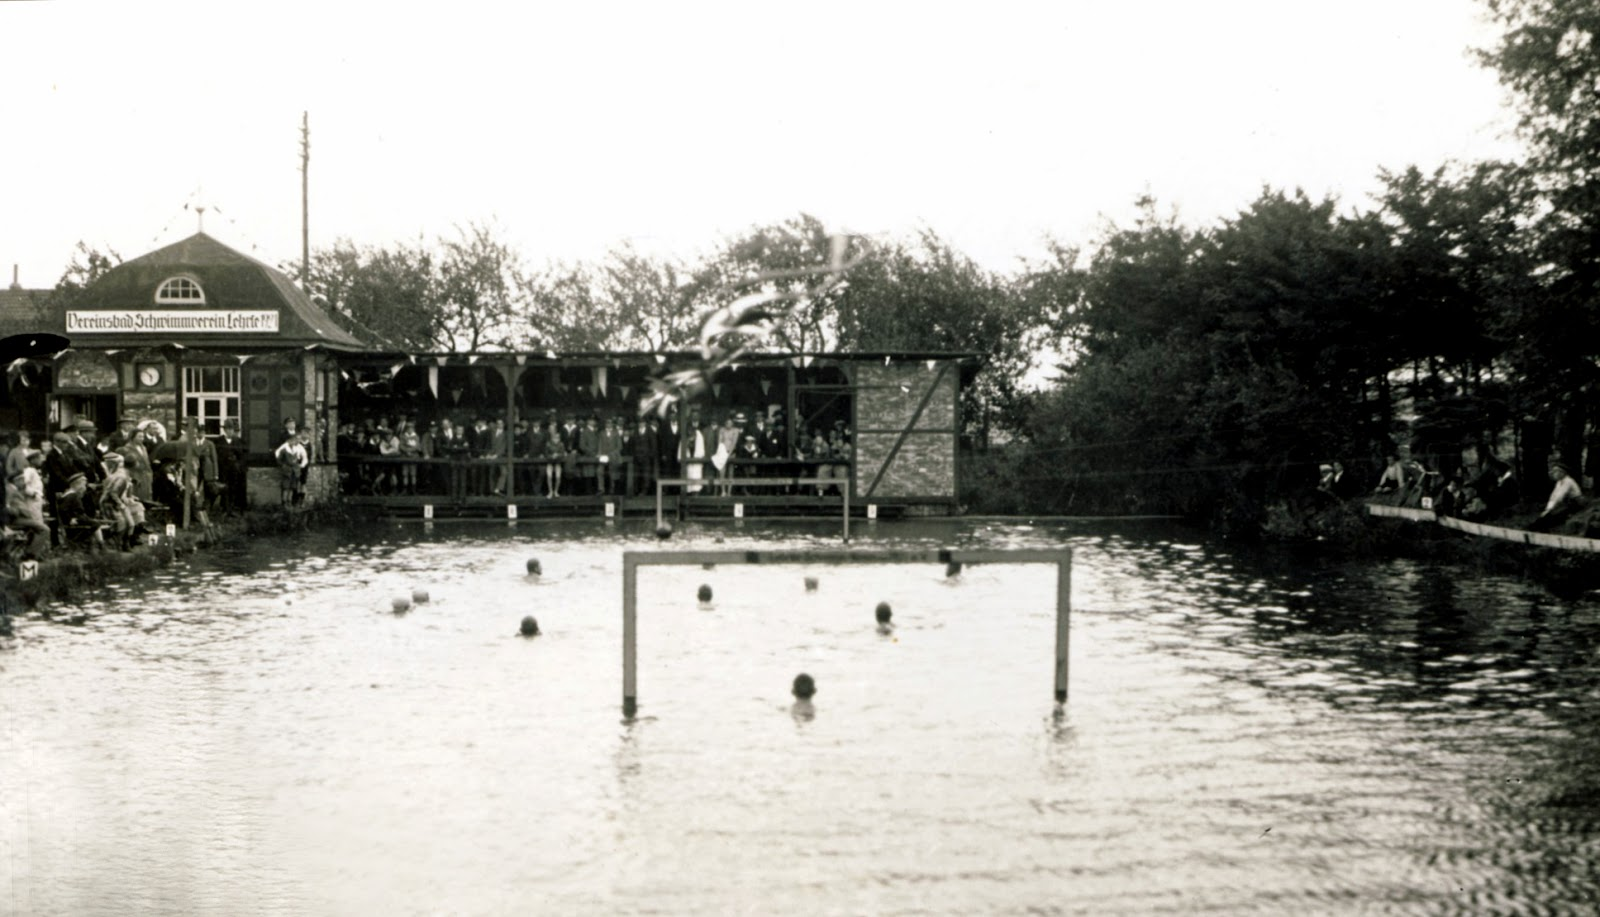 Lehrte Germany  city pictures gallery : Water Polo legends: 1927: Water Polo match in Lehrte, Germany